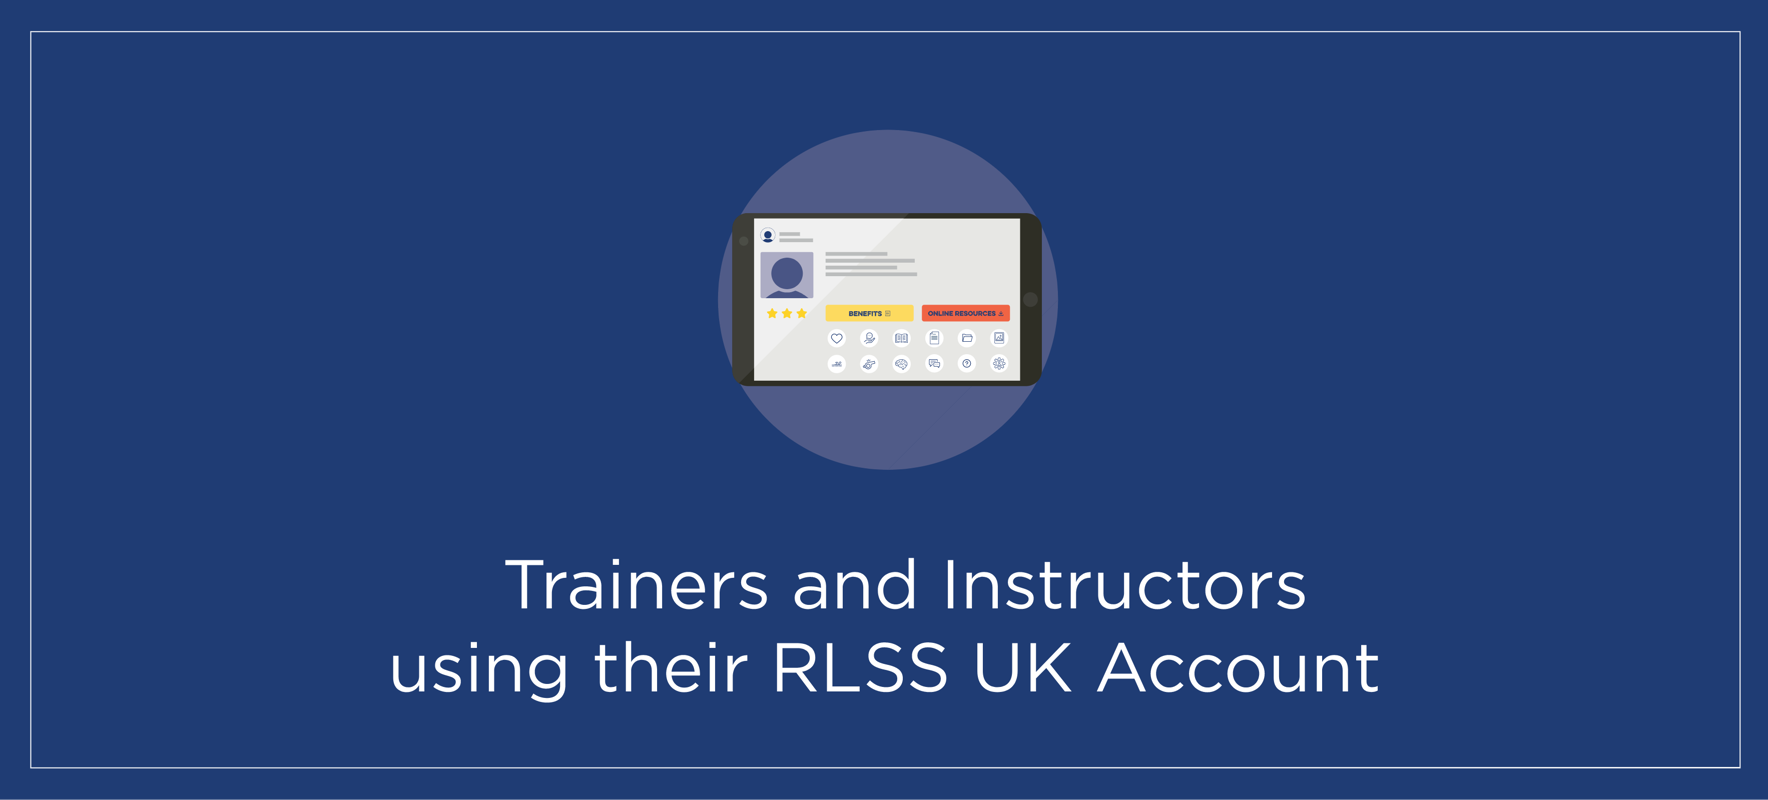 Trainers and Instructors using their RLSS UK Account (powered by tahdah)